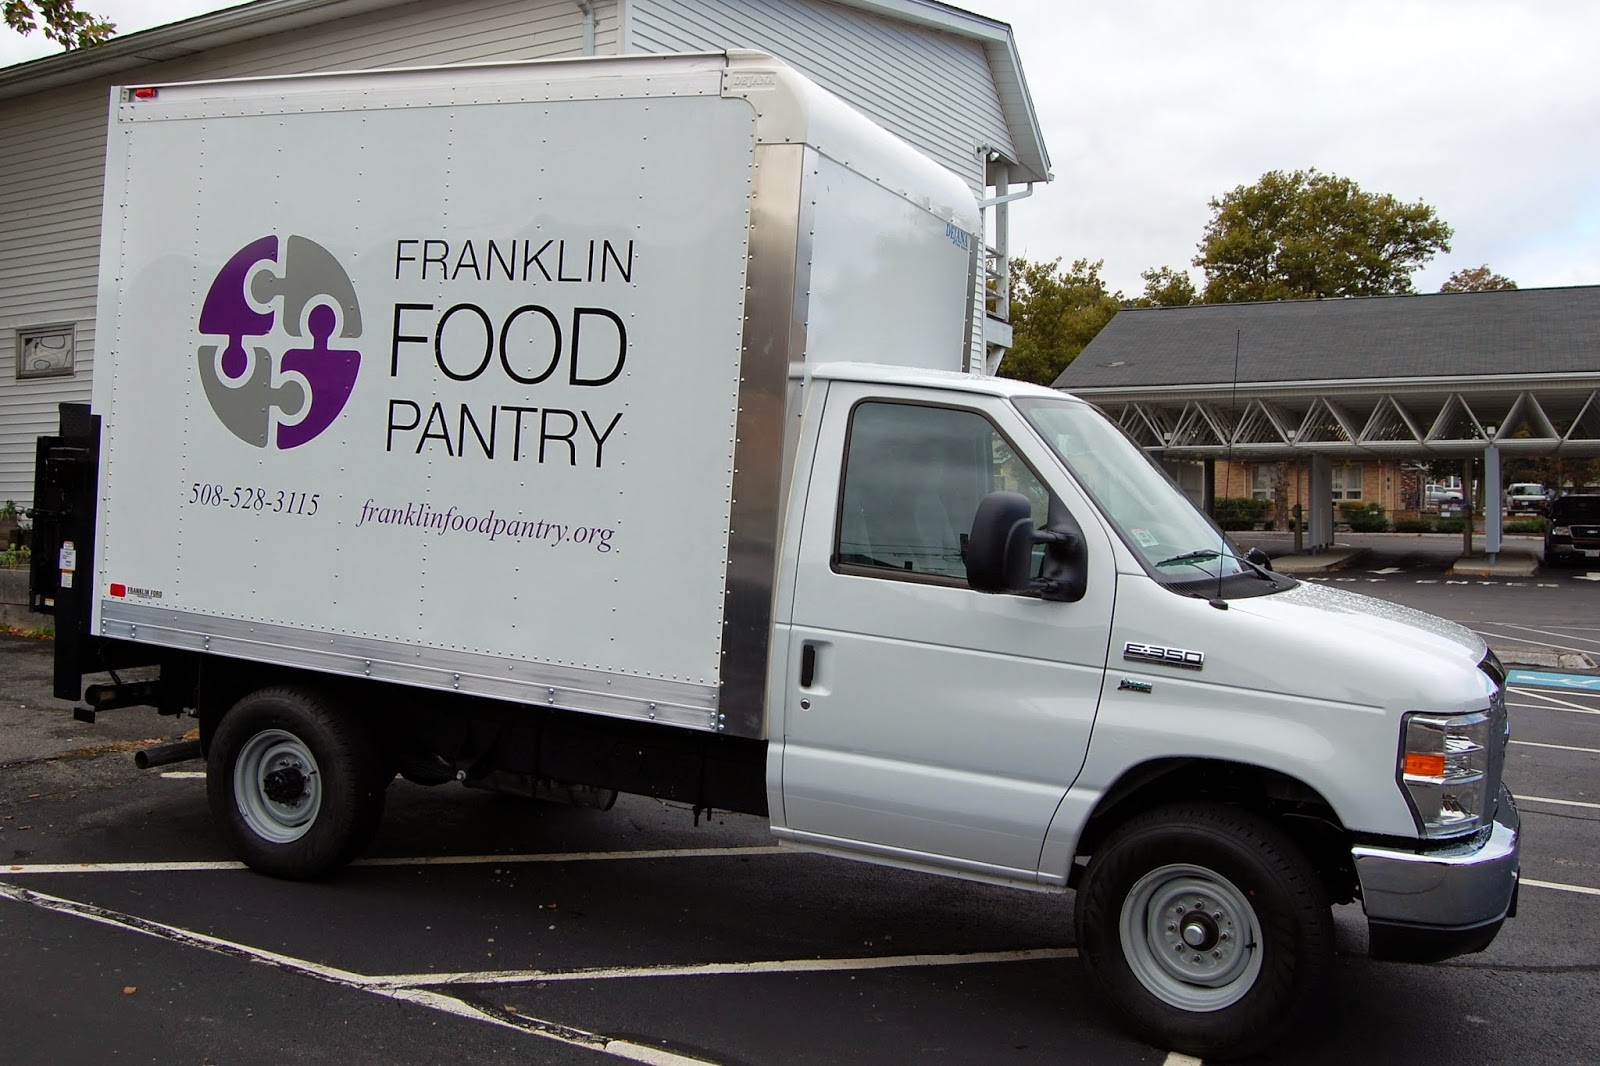 Franklin Food Pantry truck